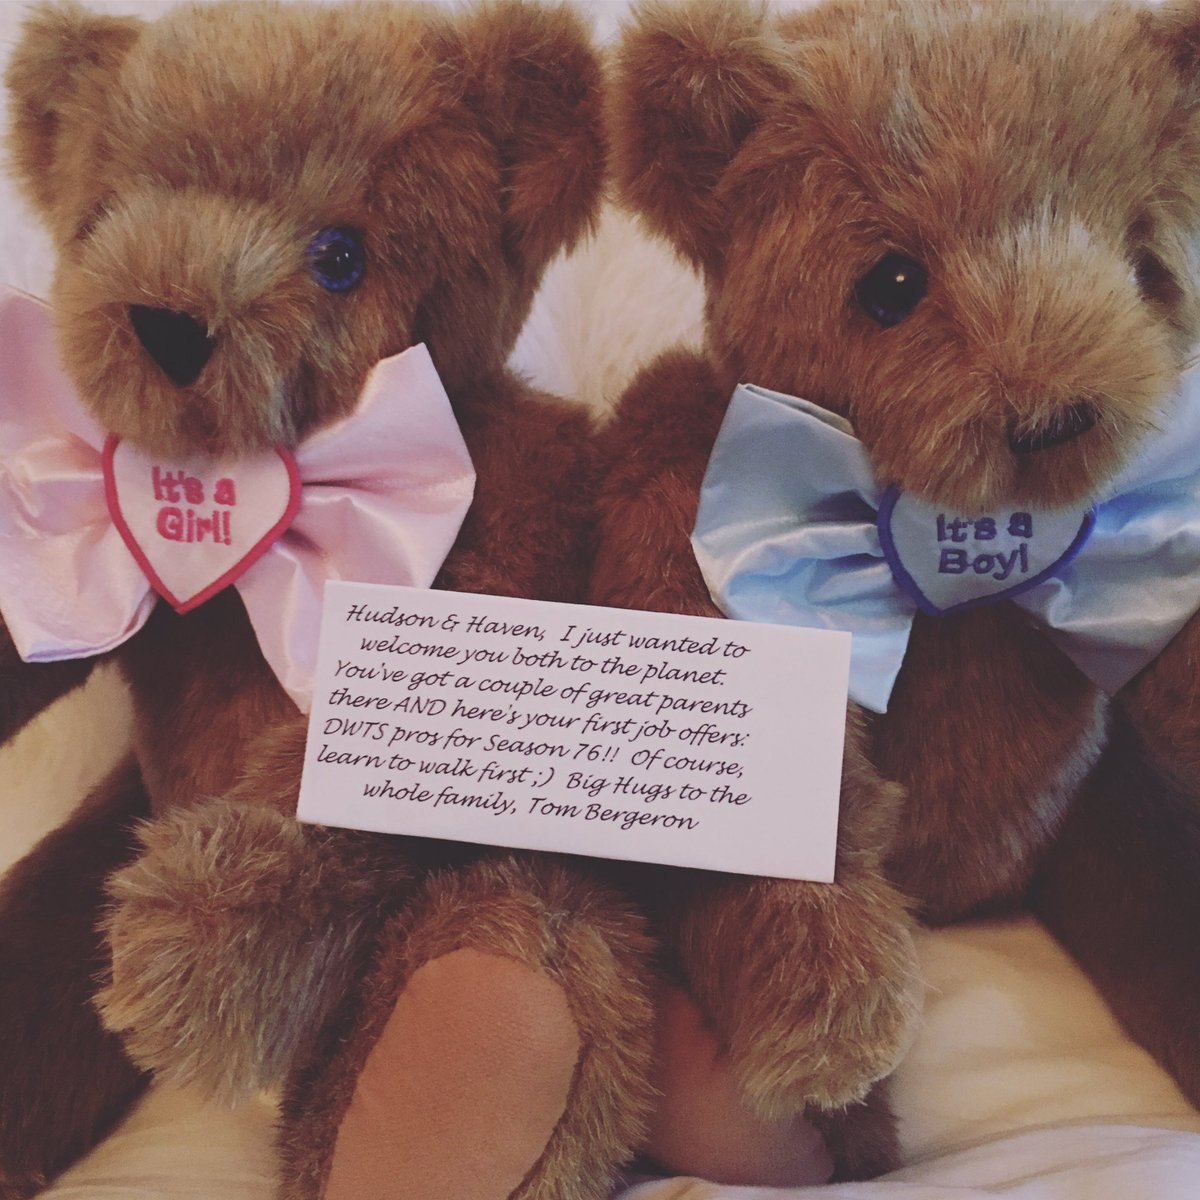 Thank you @tombergeron for the adorable Teddy Bears 🐻🐻💕 your funny little card made my day! Thanks for the babies fist job offer too... #dwtsseason76 😂 @robert_herjavec Hudson, Haven and I can't wait to watch @dancingabc tonight #dwtsathletes 🕺💃 https://t.co/yMr2pWmJwn